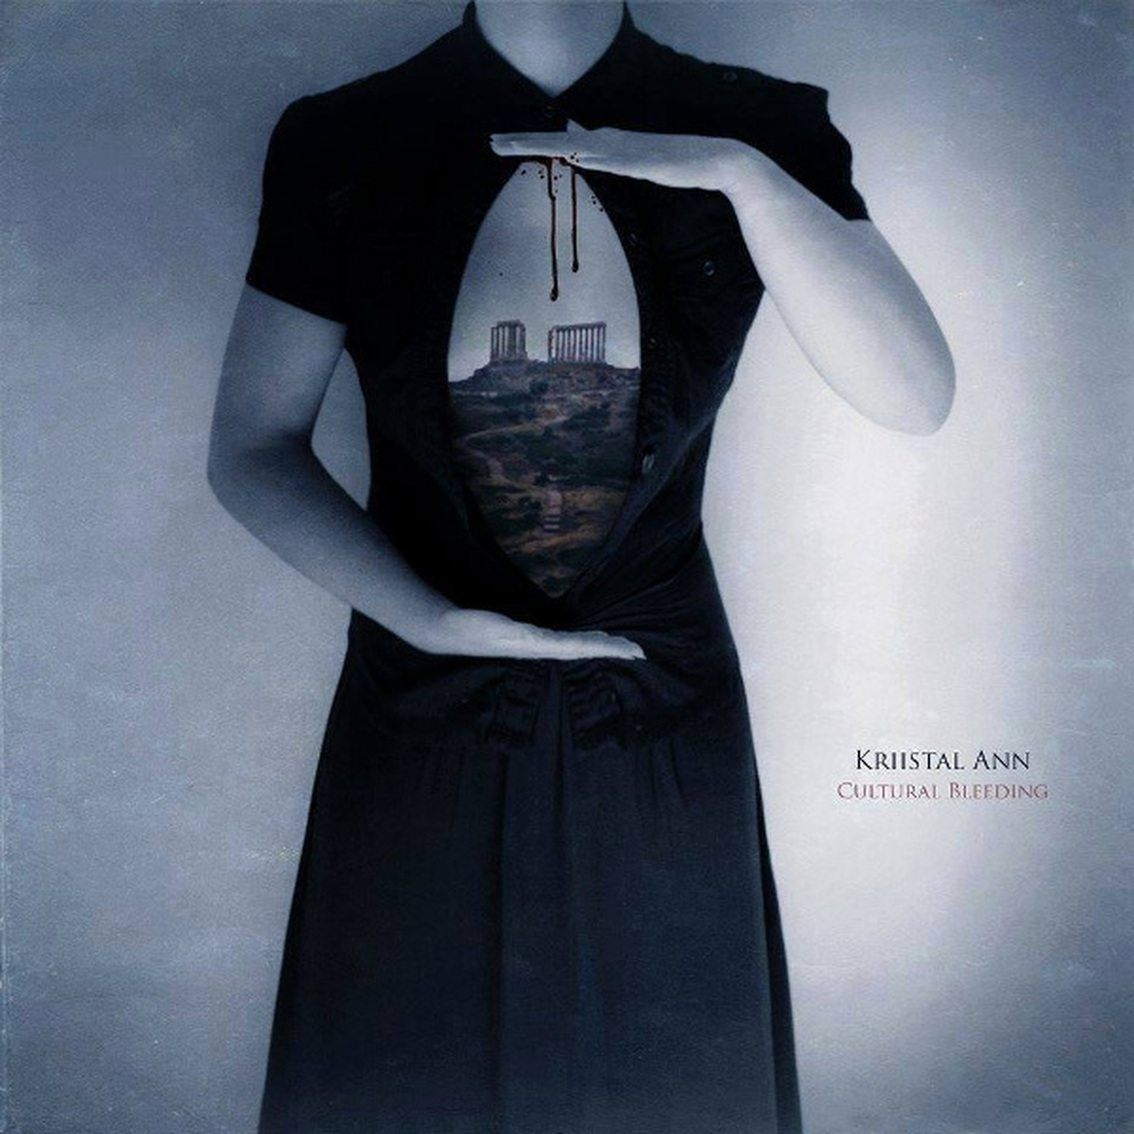 Minimal synth artist Kriistal Ann reissues splendid'Cultural Bleeding' on vinyl in October - a must-have !